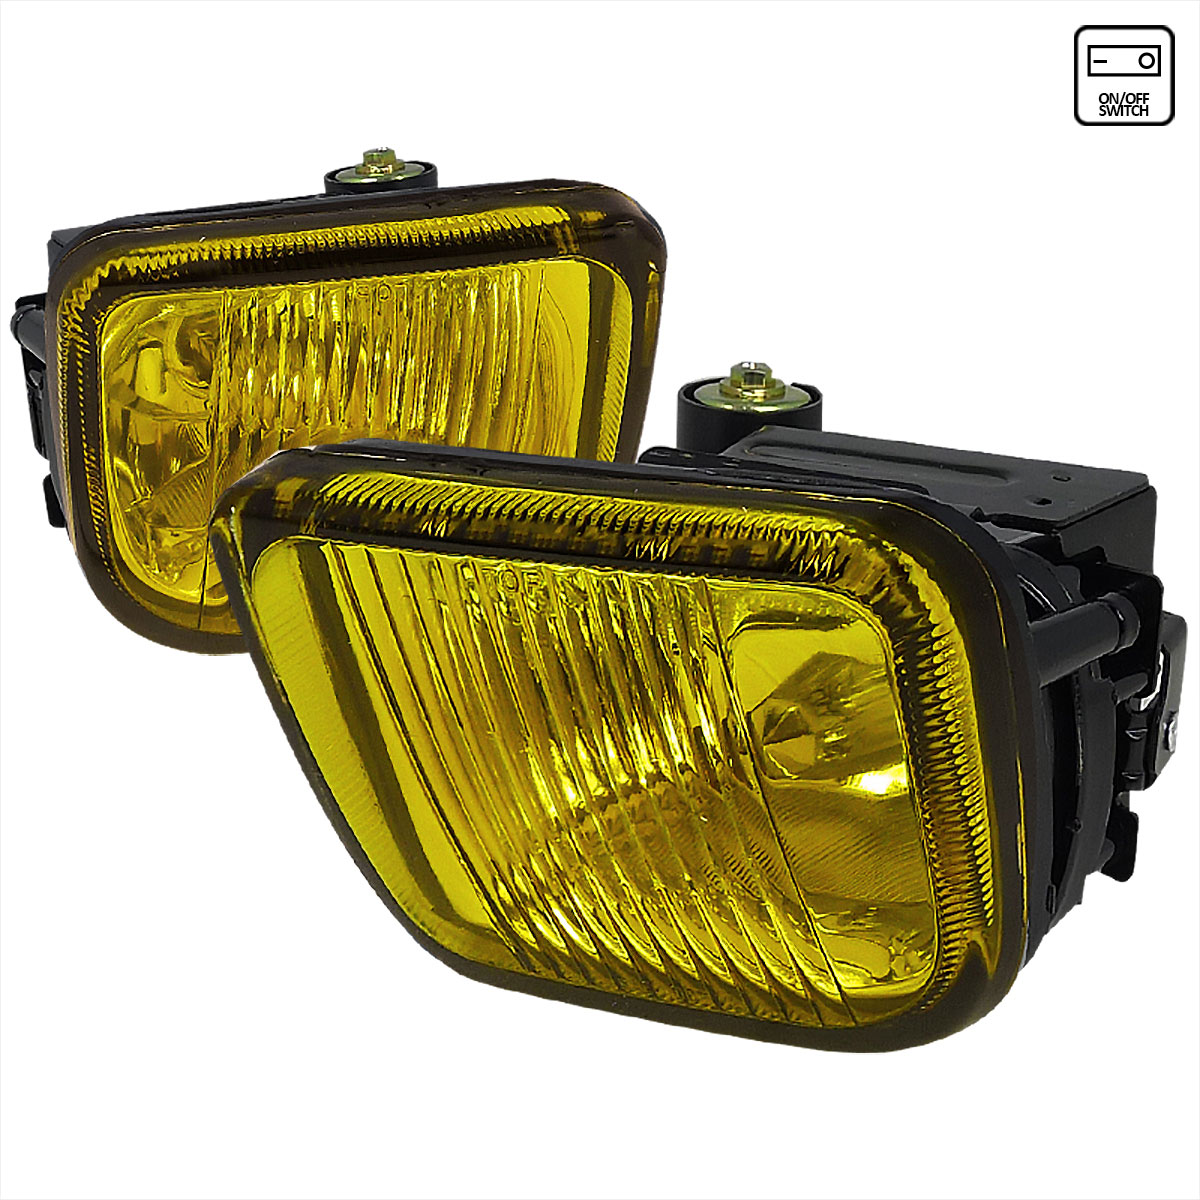 Spec-D Tuning LF-CV96AM-WJ - Spec-D 96-98 Honda Civic Fog Lights - Amber